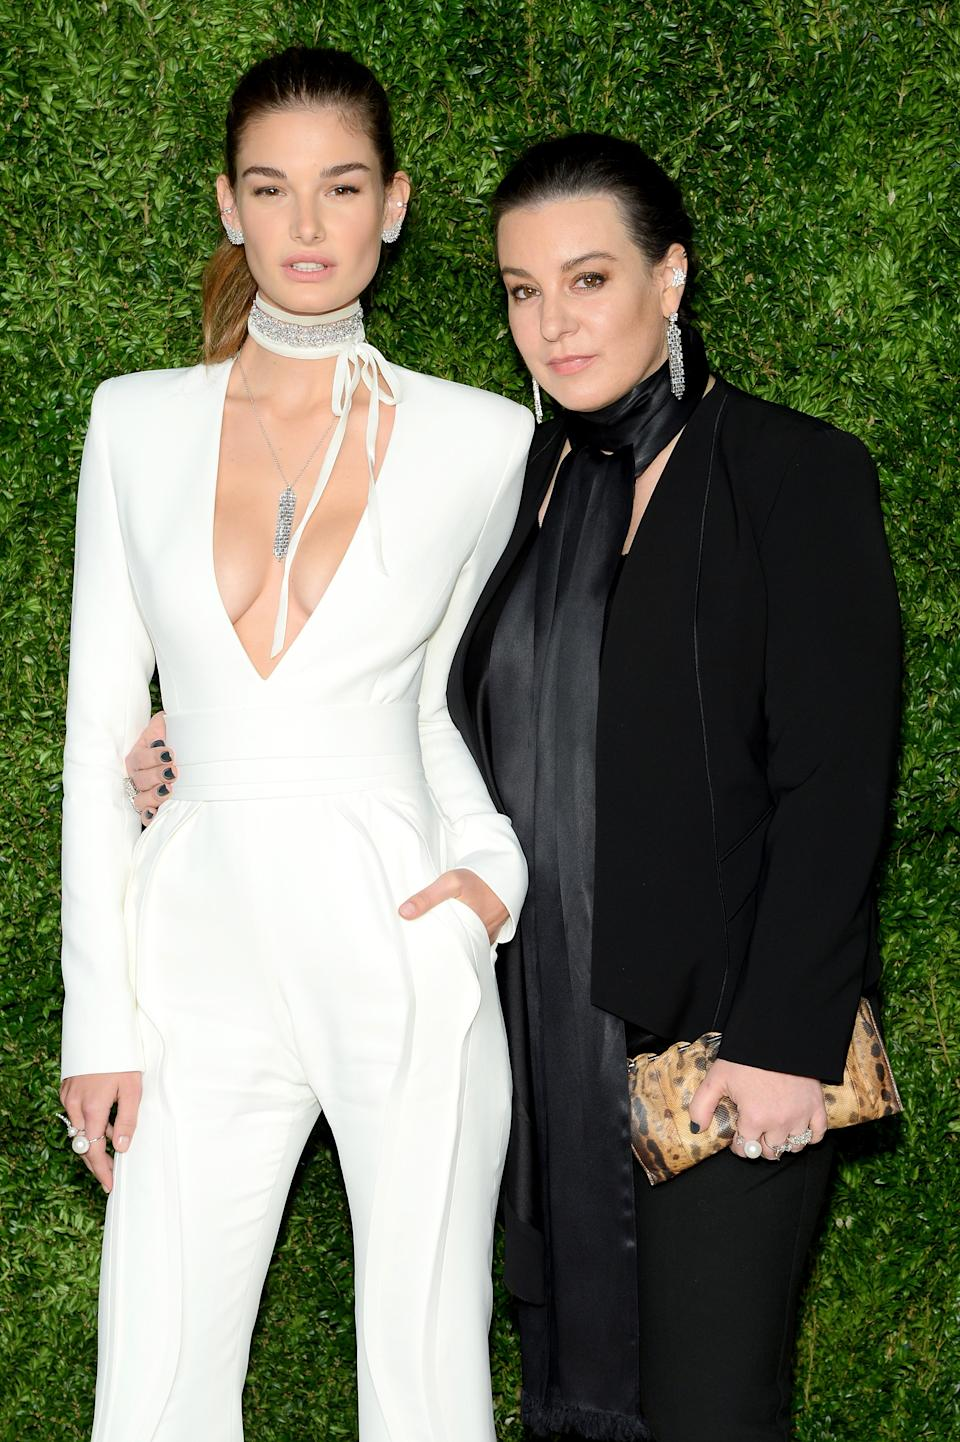 Jewelry designer Dana Lorenz (right, with model Ophelie Guillermand in 2015) canceled her CFDA membership in protest over Kara Ross's involvement with its board. (Photo: Andrew Toth/Getty Images)